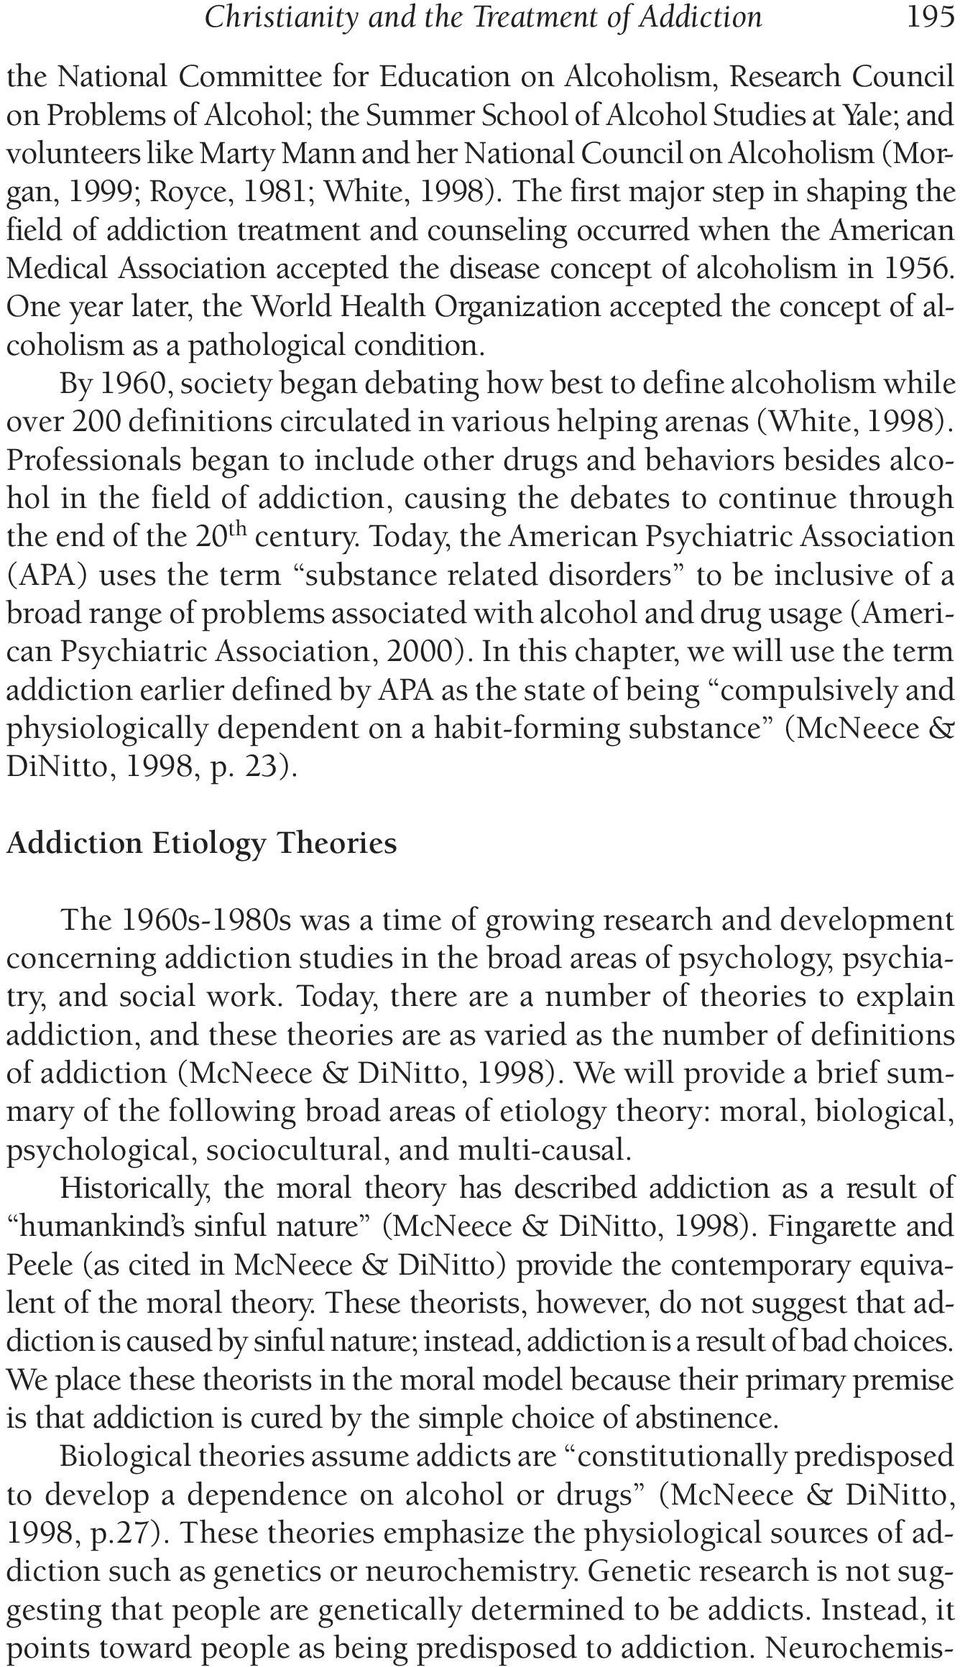 The first major step in shaping the field of addiction treatment and counseling occurred when the American Medical Association accepted the disease concept of alcoholism in 1956.